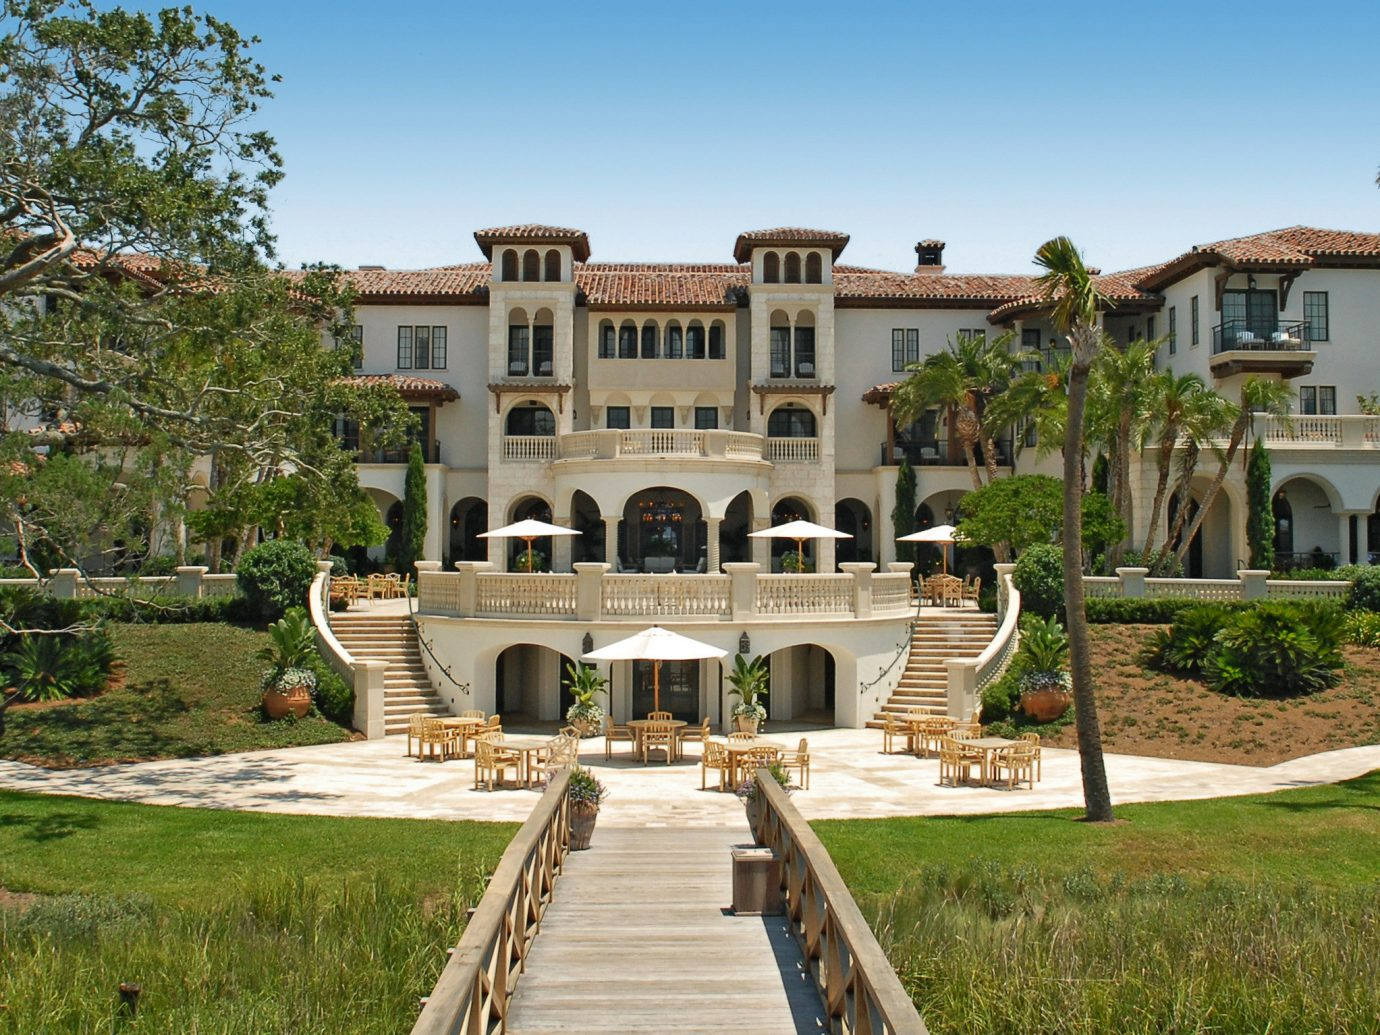 Beach Islands Luxury Travel Trip Ideas grass outdoor sky property estate mansion building home Villa real estate park historic house hacienda house landscaping facade Courtyard lawn official residence elevation stone walkway colonnade